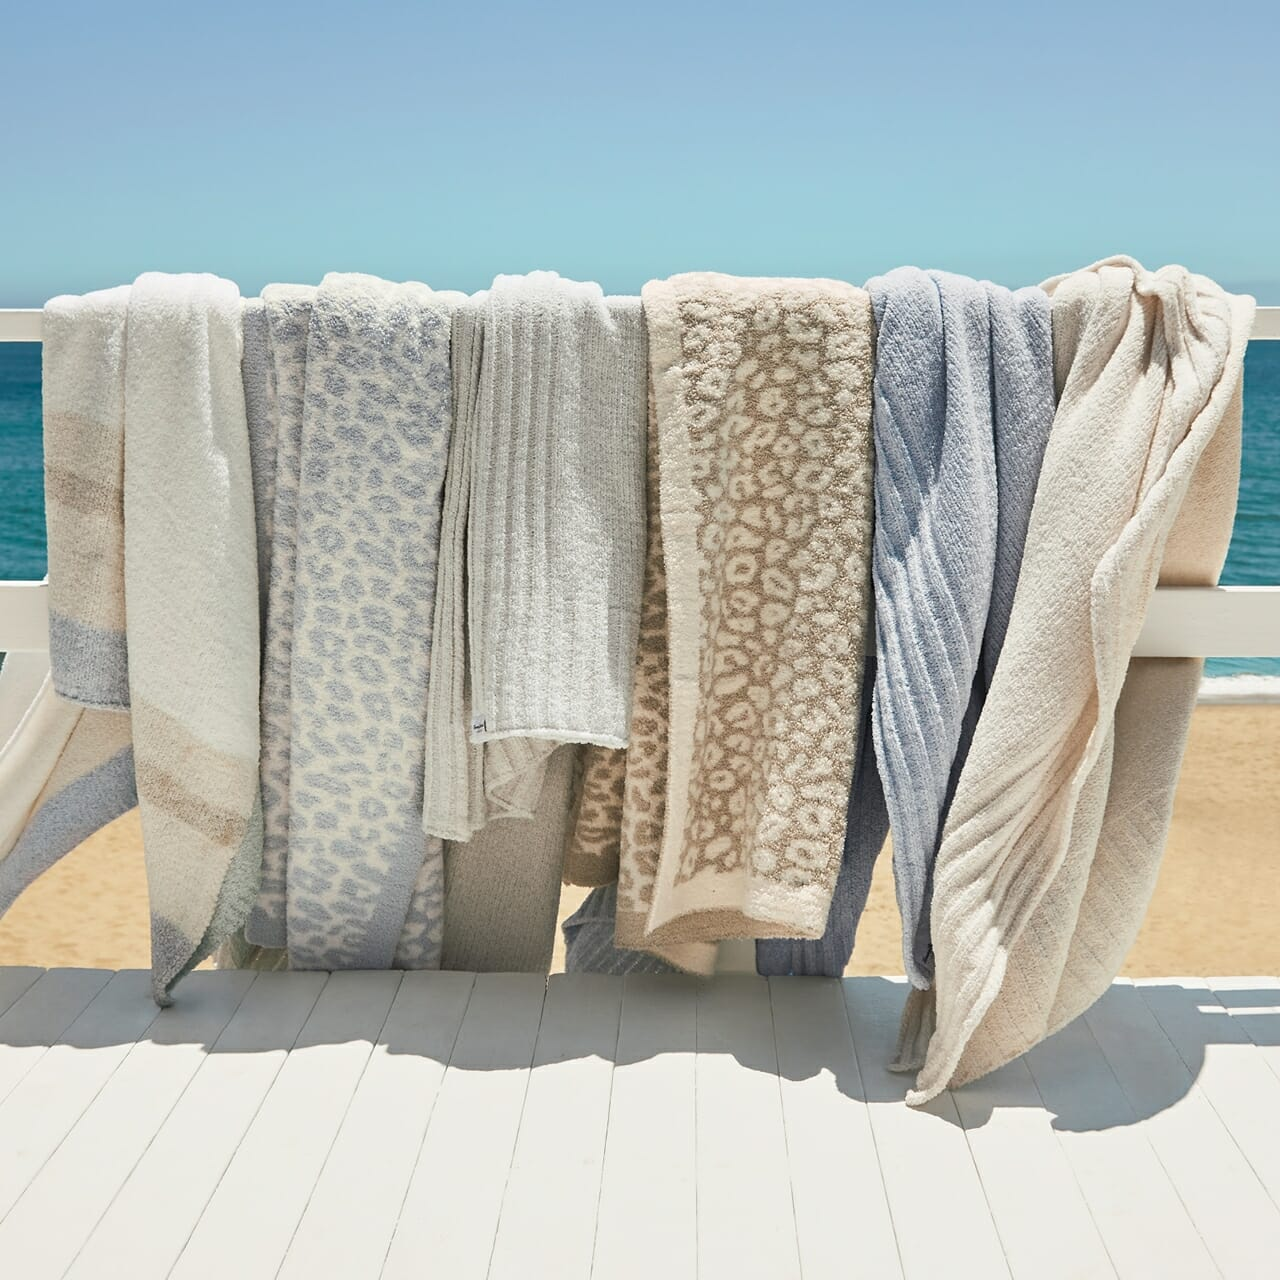 Soft Tommy Bahama blankets on a clothes line with a beach in the background.